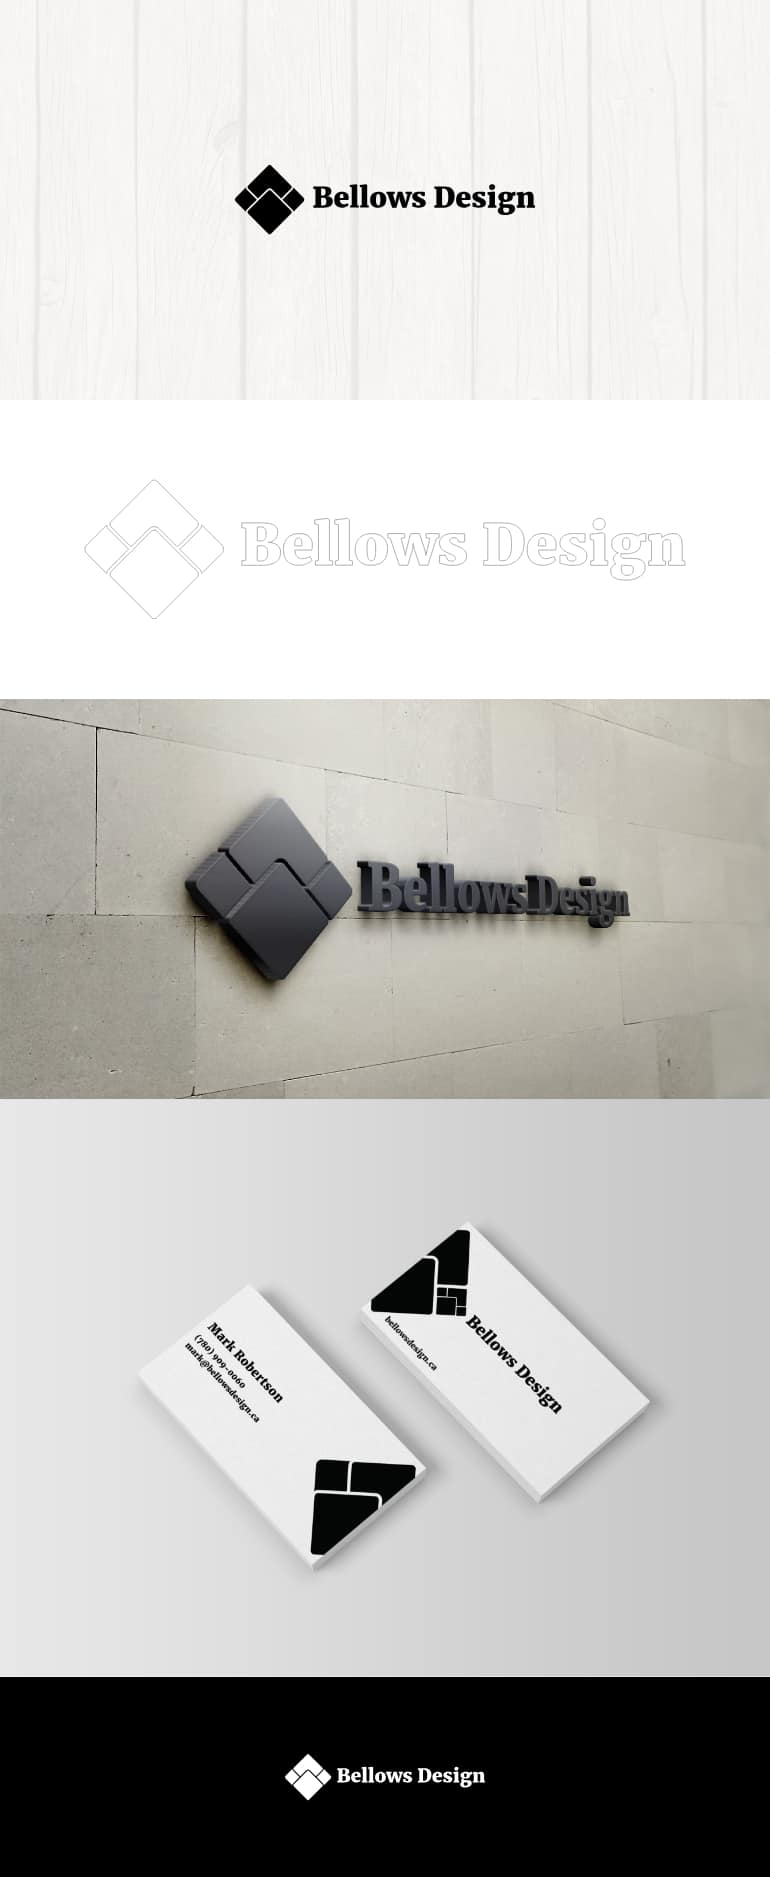 Bellows Design Identity Development